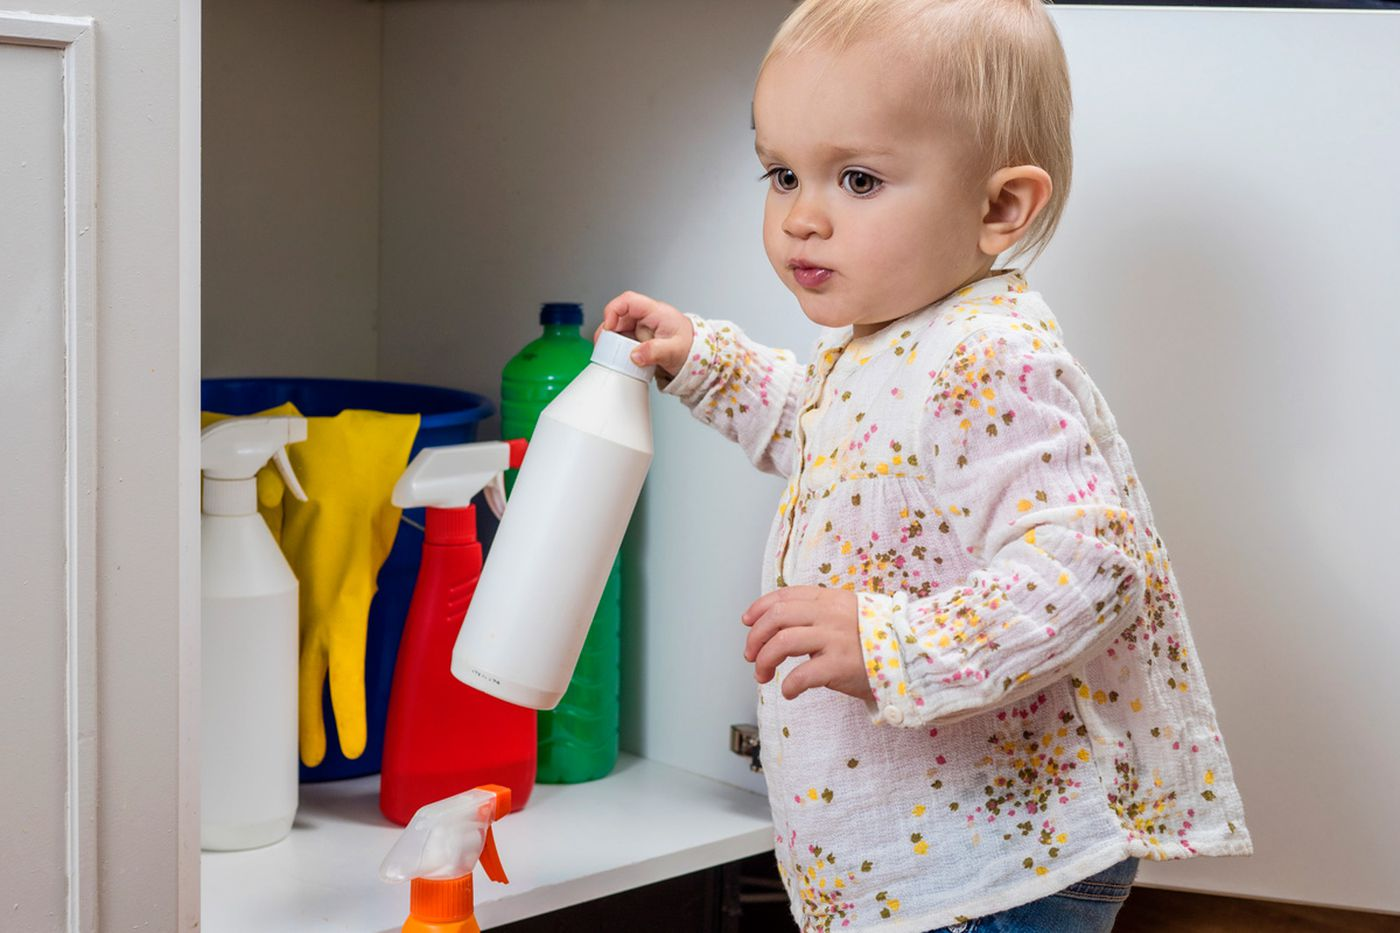 Early exposure to household cleaners could lead to overweight kids